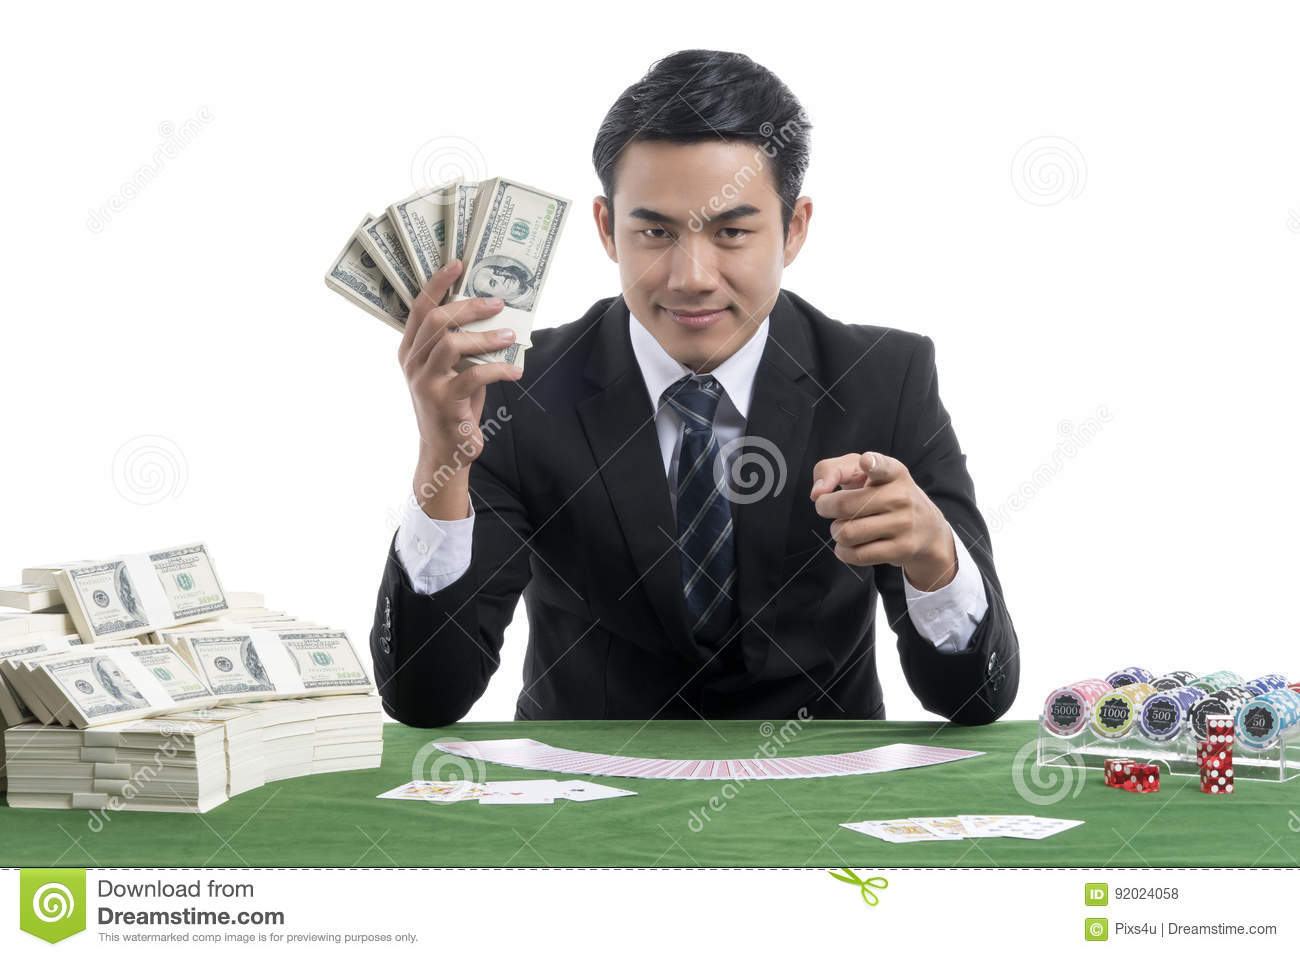 The young man acting challenge gambler